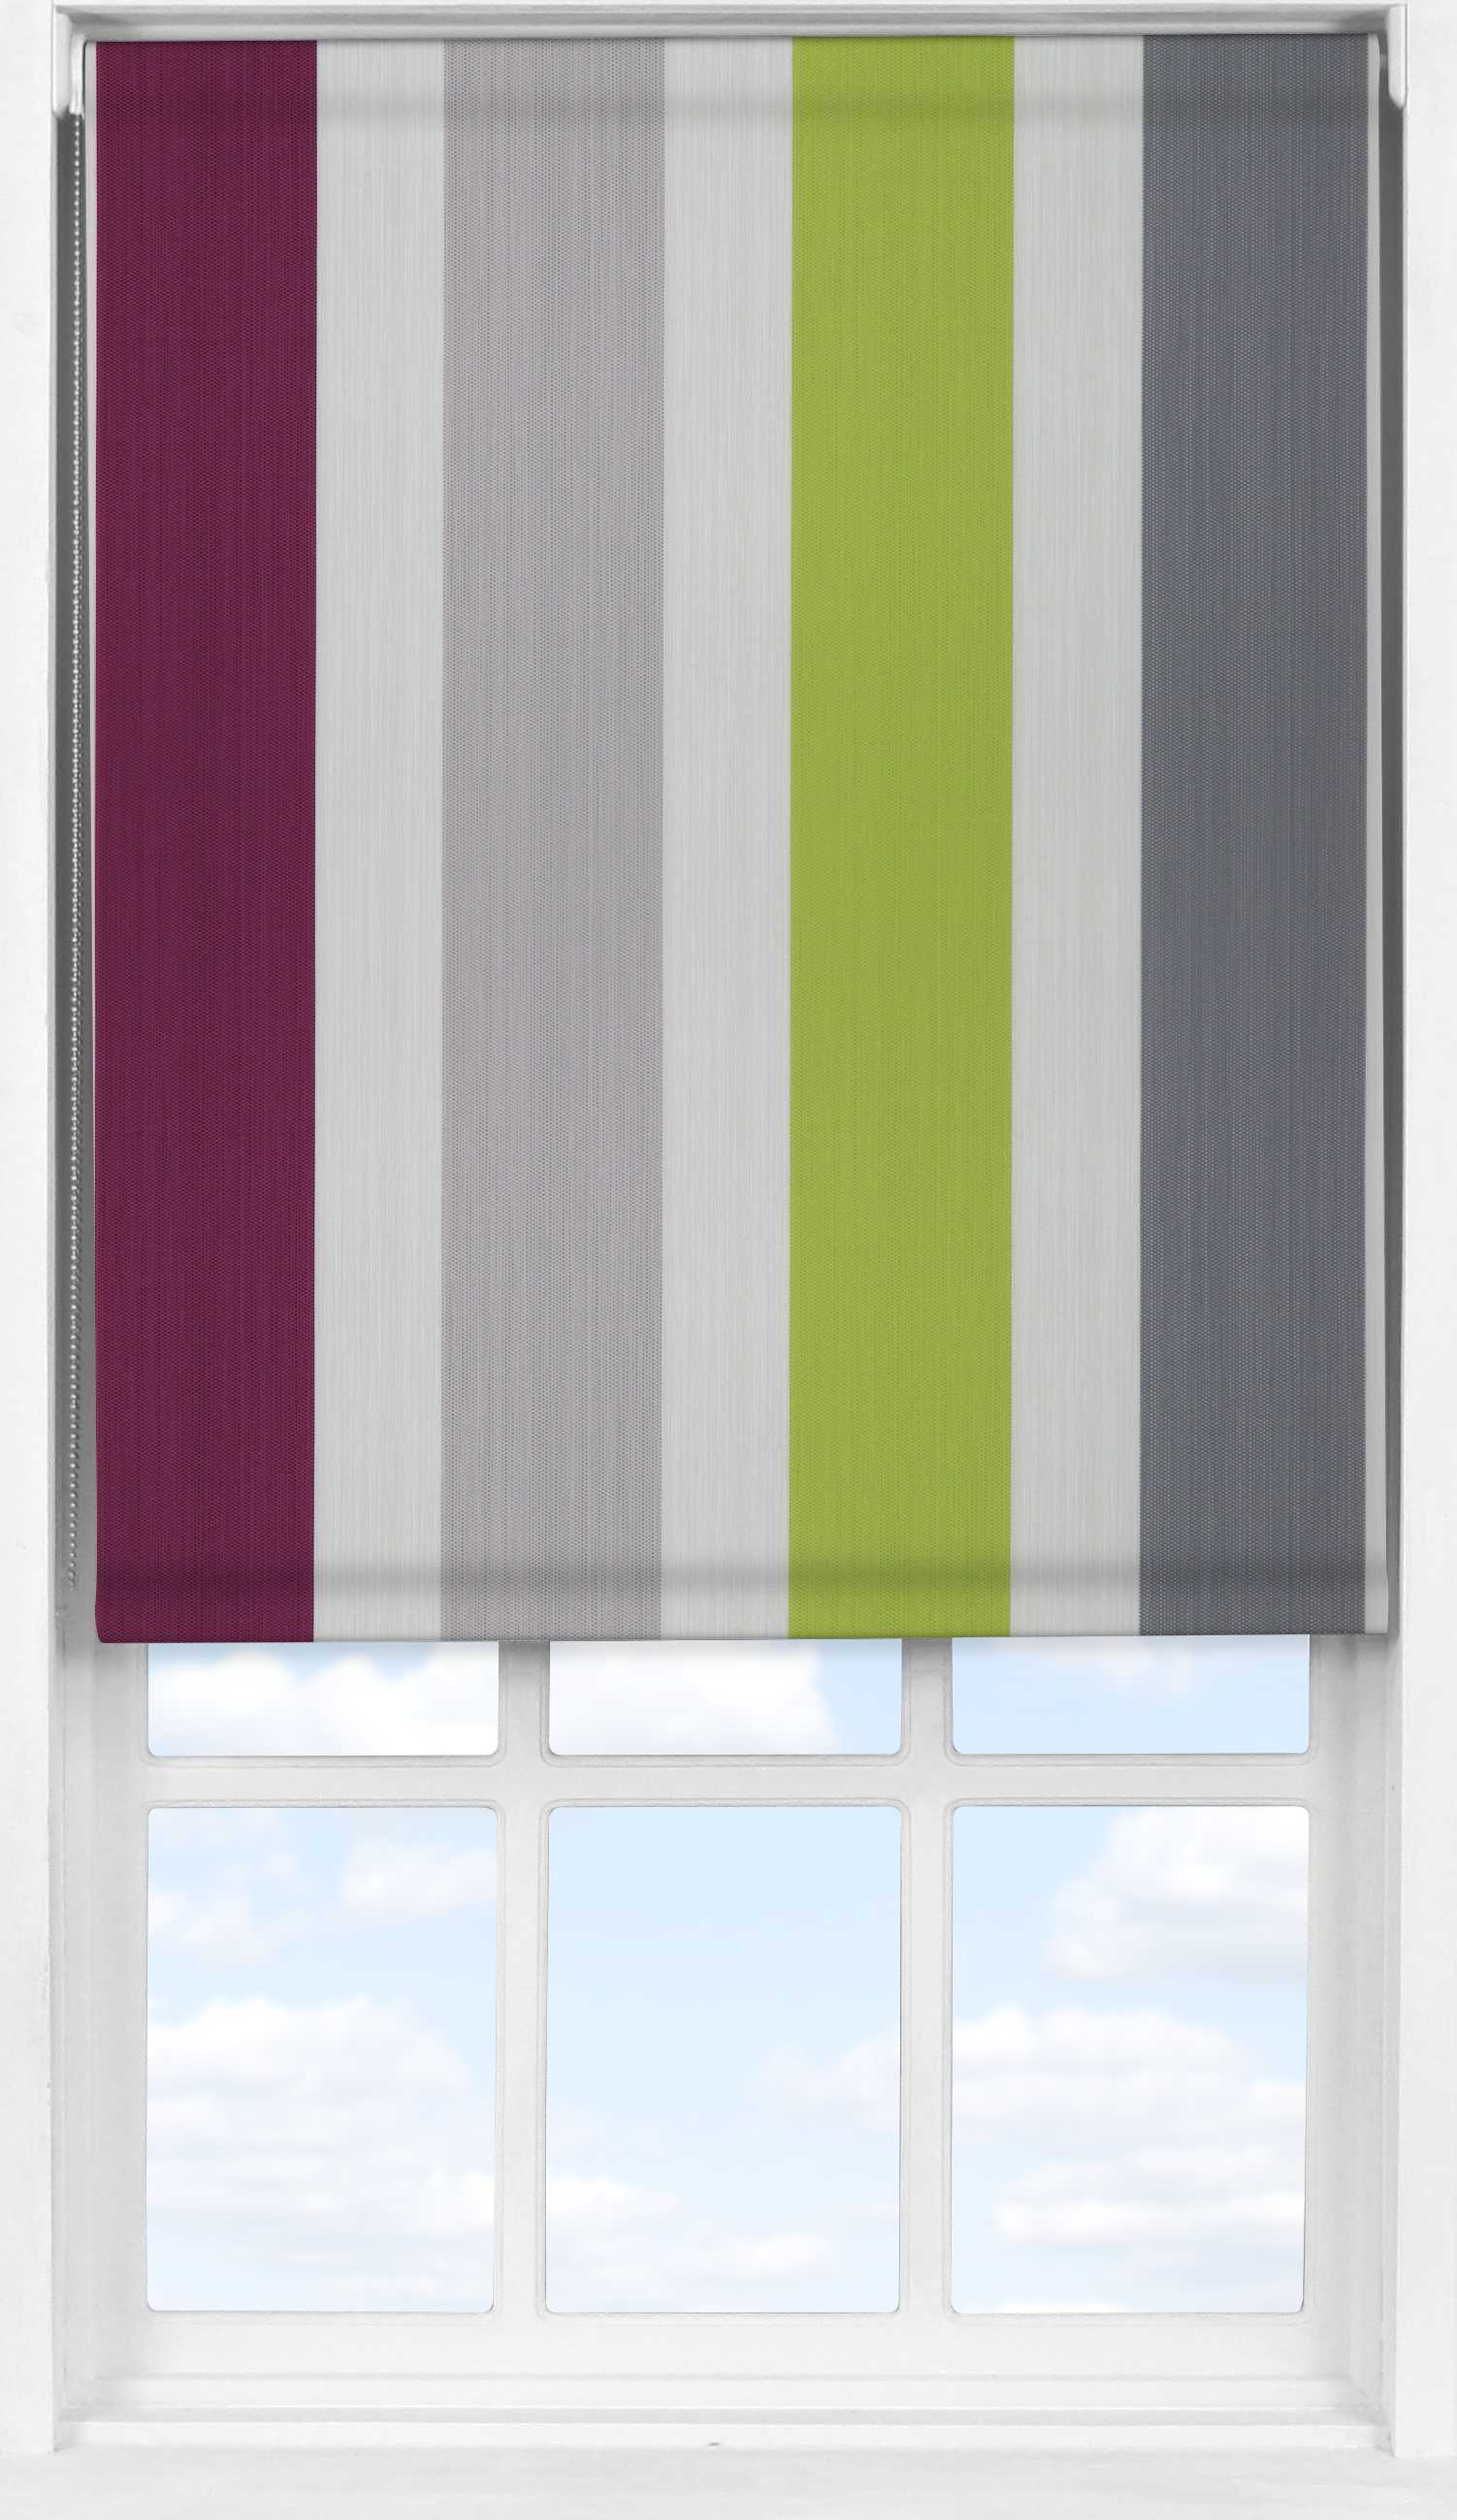 Easifit Roller Blind in Kensington Amethyst Translucent